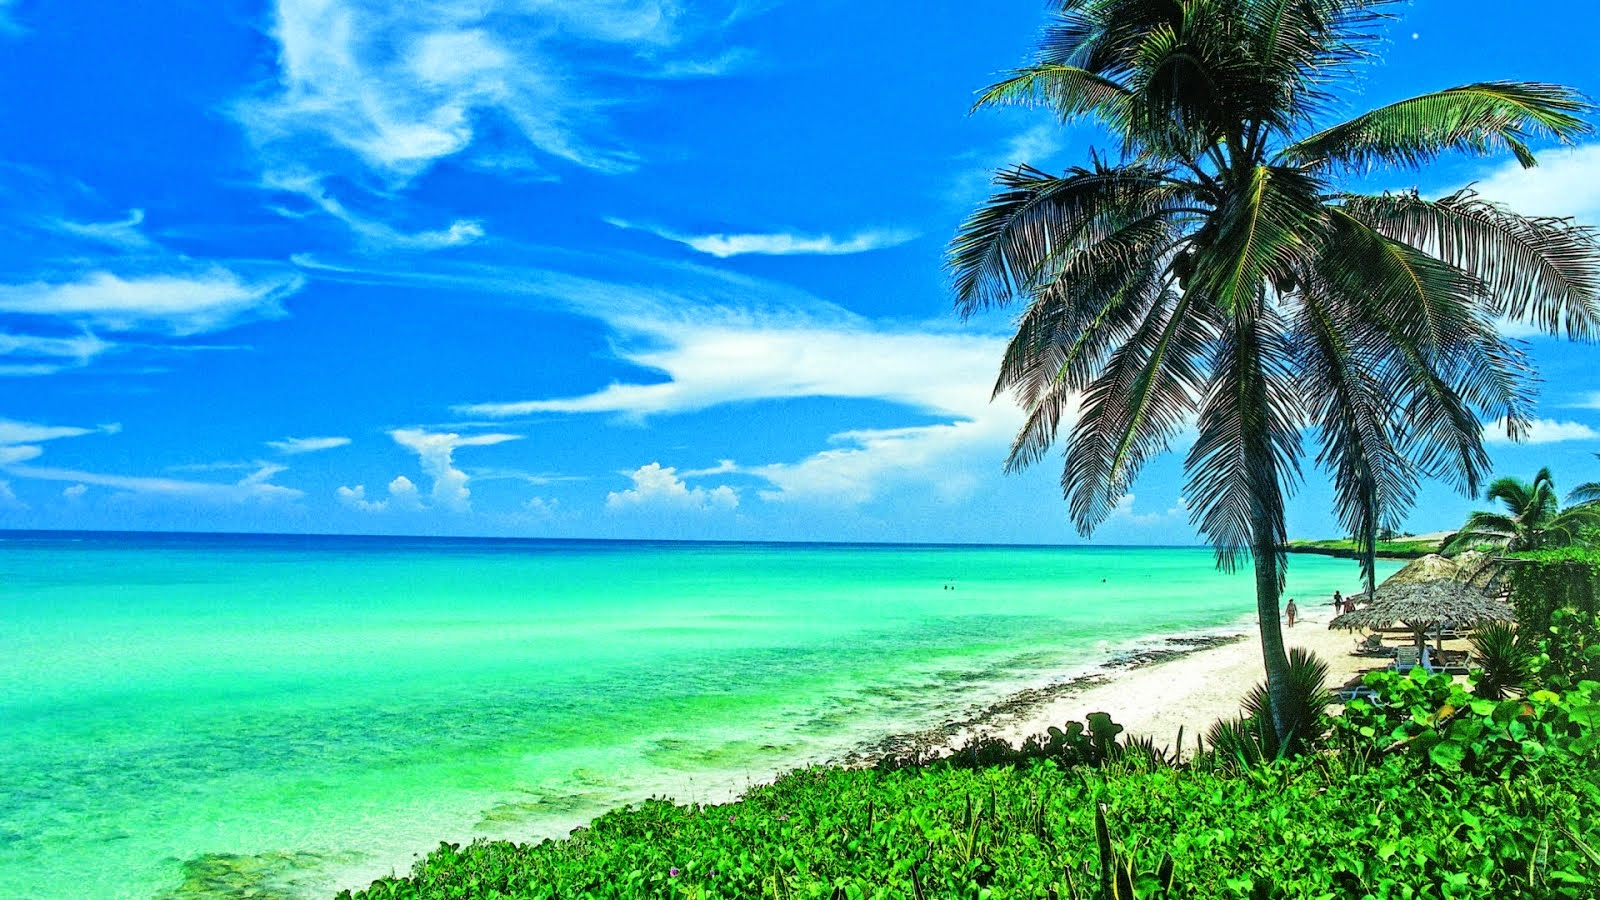 Hd Tropical Island Beach Paradise Wallpapers And Backgrounds: 3D Wallpaper HD 1680x1050